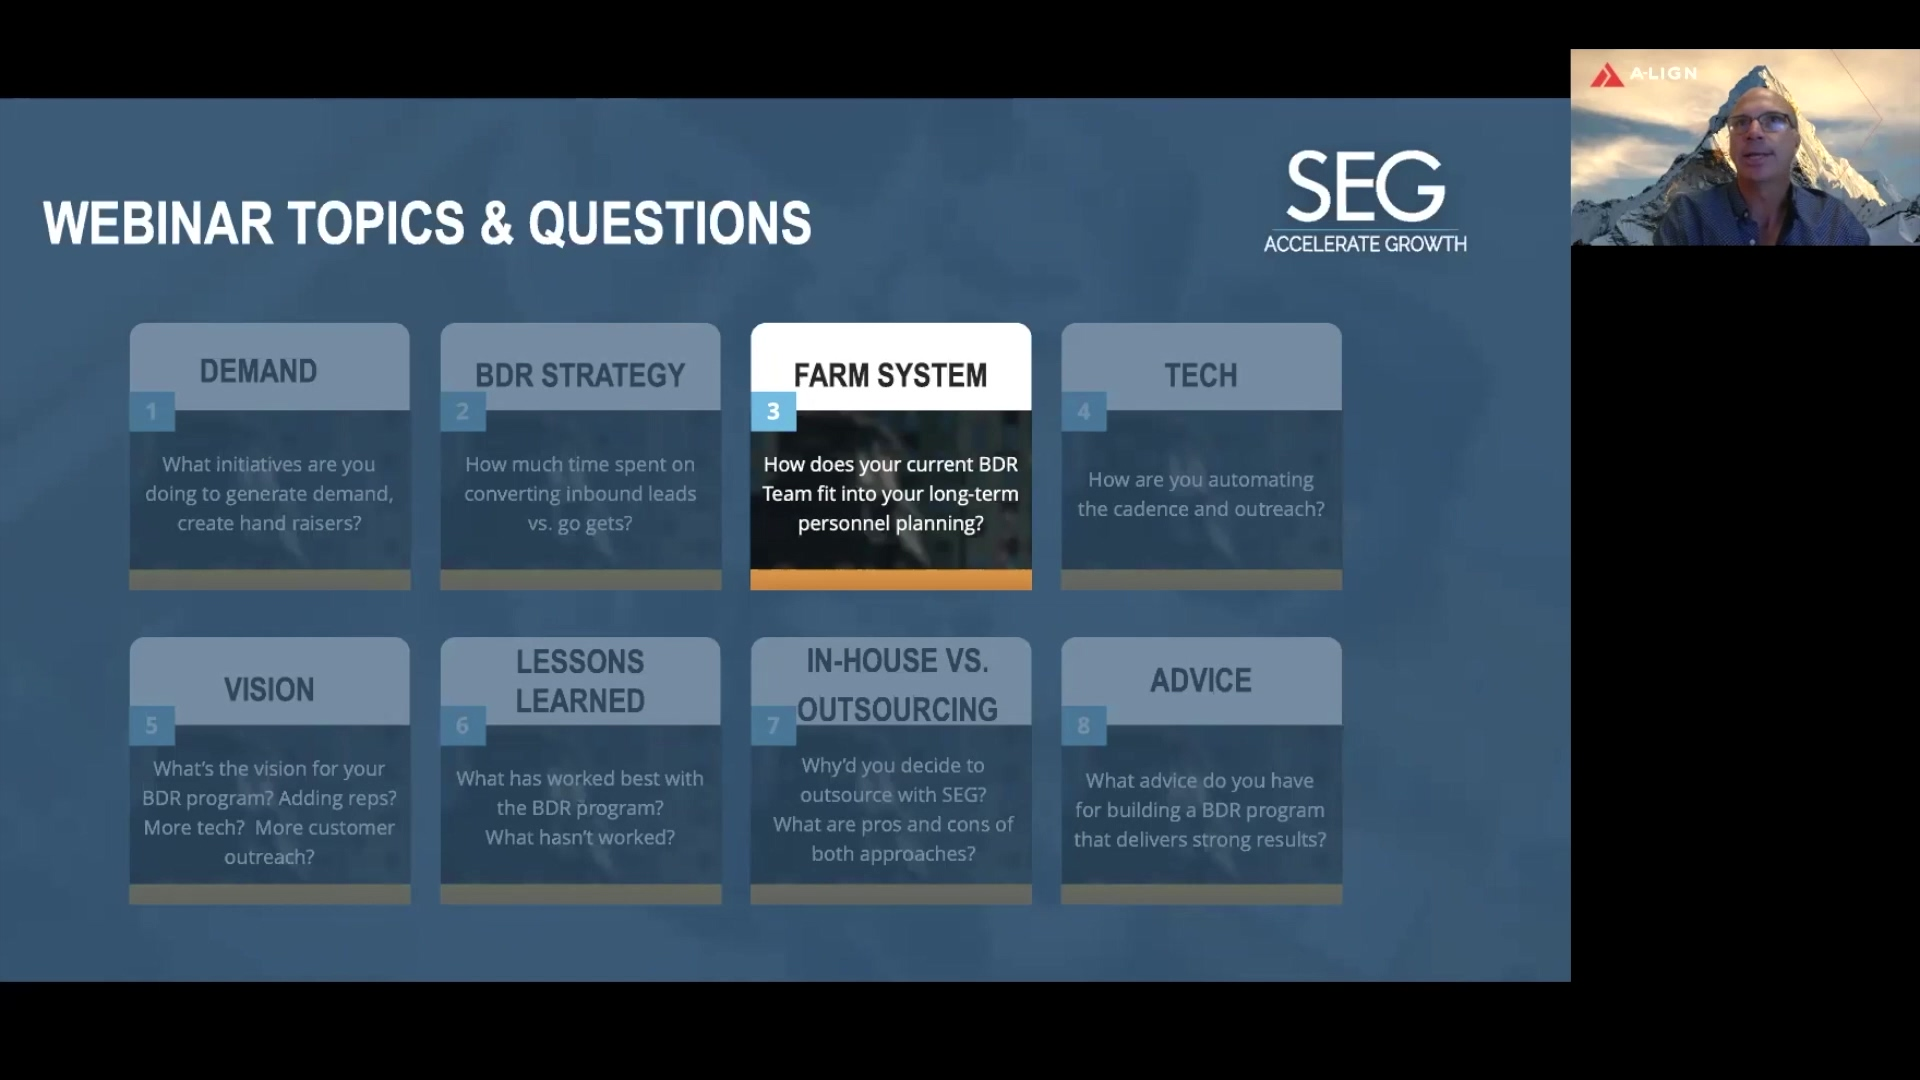 A-LIGN Webinar- What Skills To Look For When Hiring A BDR